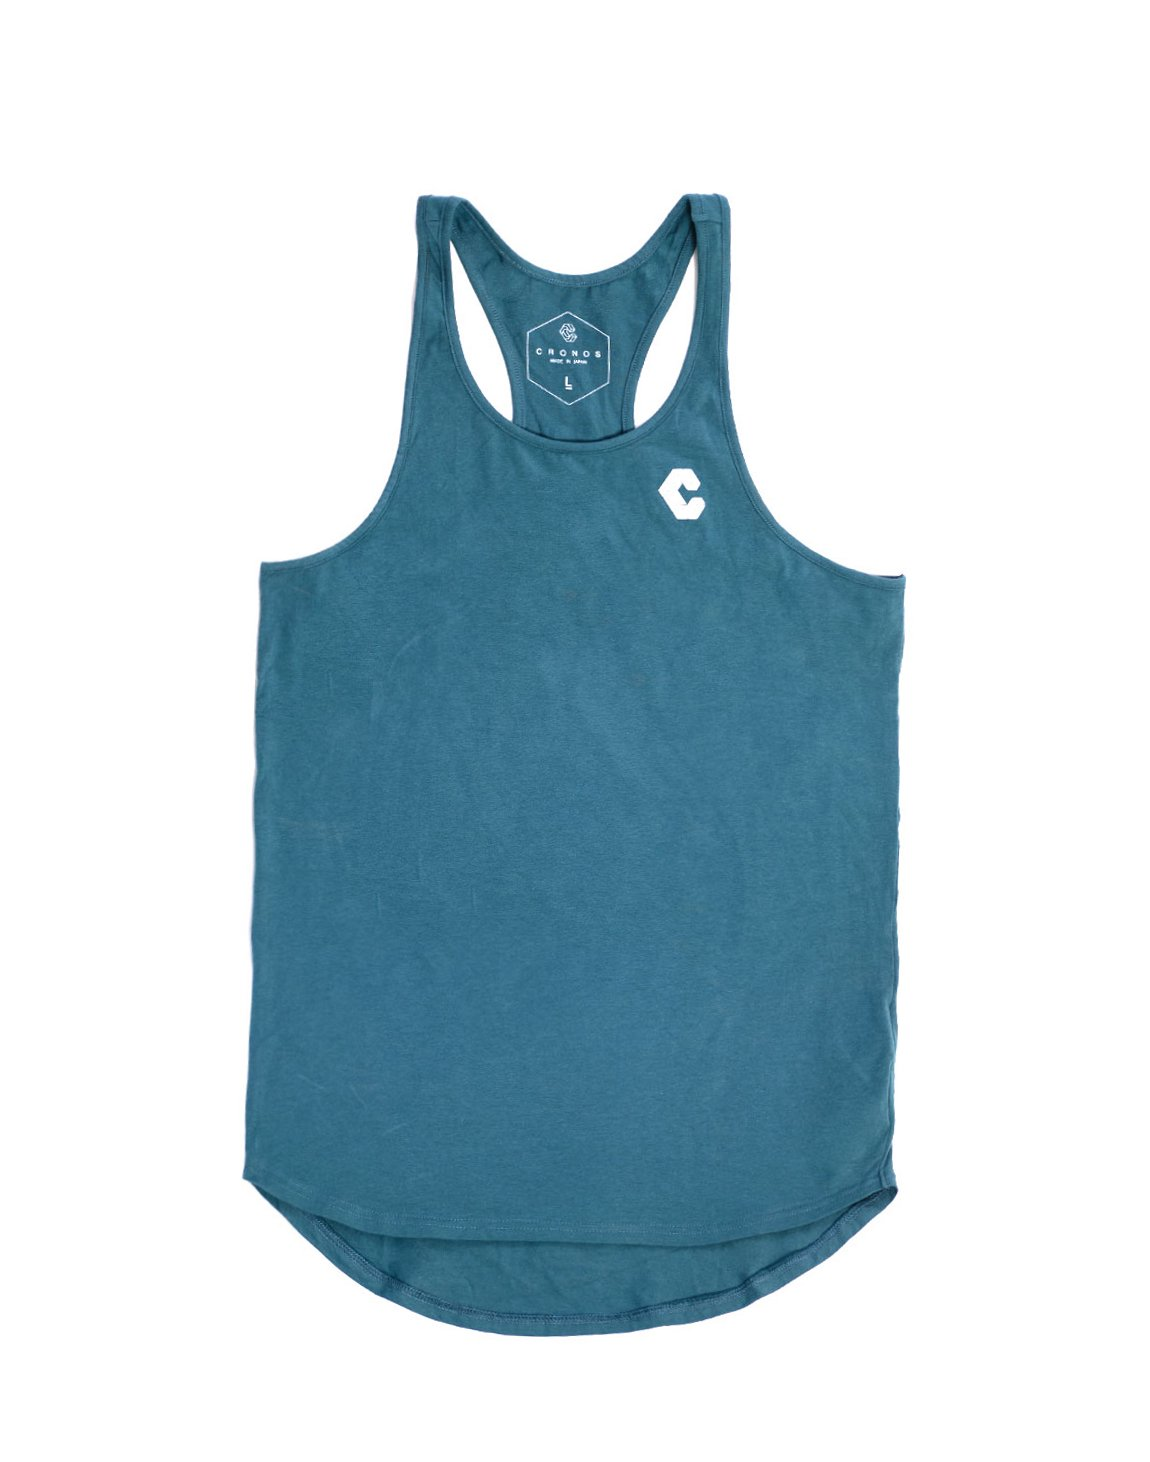 <img class='new_mark_img1' src='https://img.shop-pro.jp/img/new/icons1.gif' style='border:none;display:inline;margin:0px;padding:0px;width:auto;' />CRONOS BACK LOG TANK TOP TURQUOISE